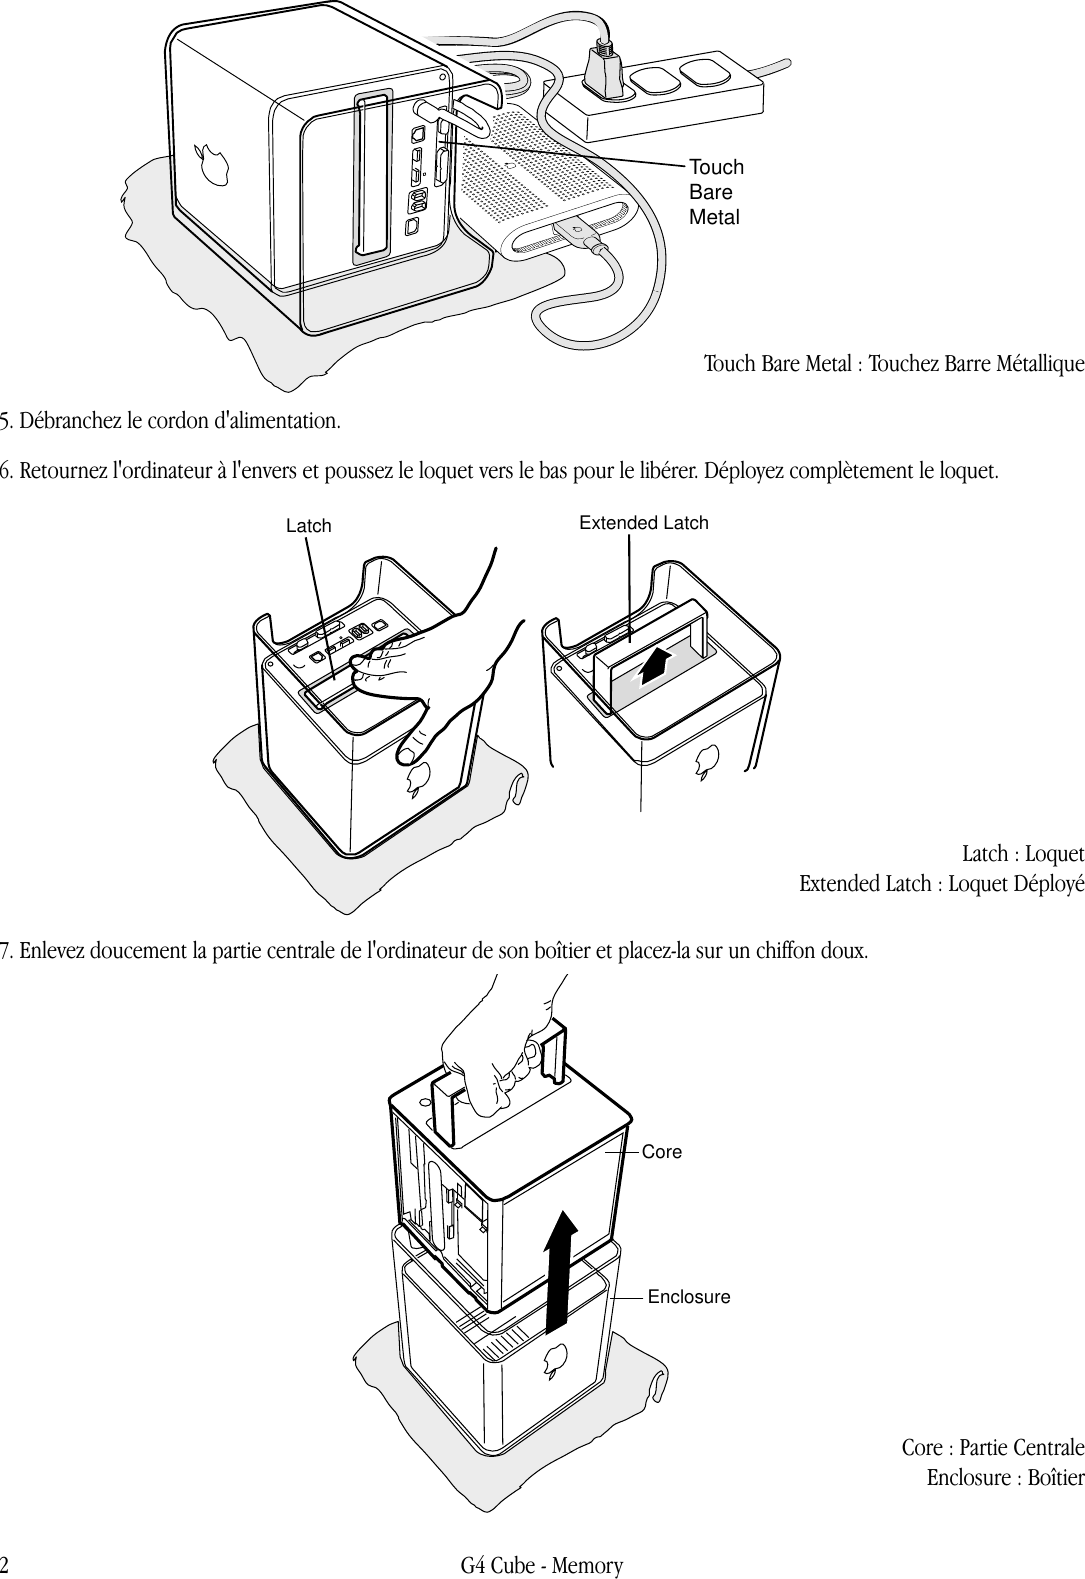 Power Mac G4 Cube Manual Wiring Diagrams together with 394135404873226440 furthermore Ford Ranger Trailer Wiring Harness Diagram besides Gabion Wall furthermore 516717757224431529. on simple landscaping diagrams